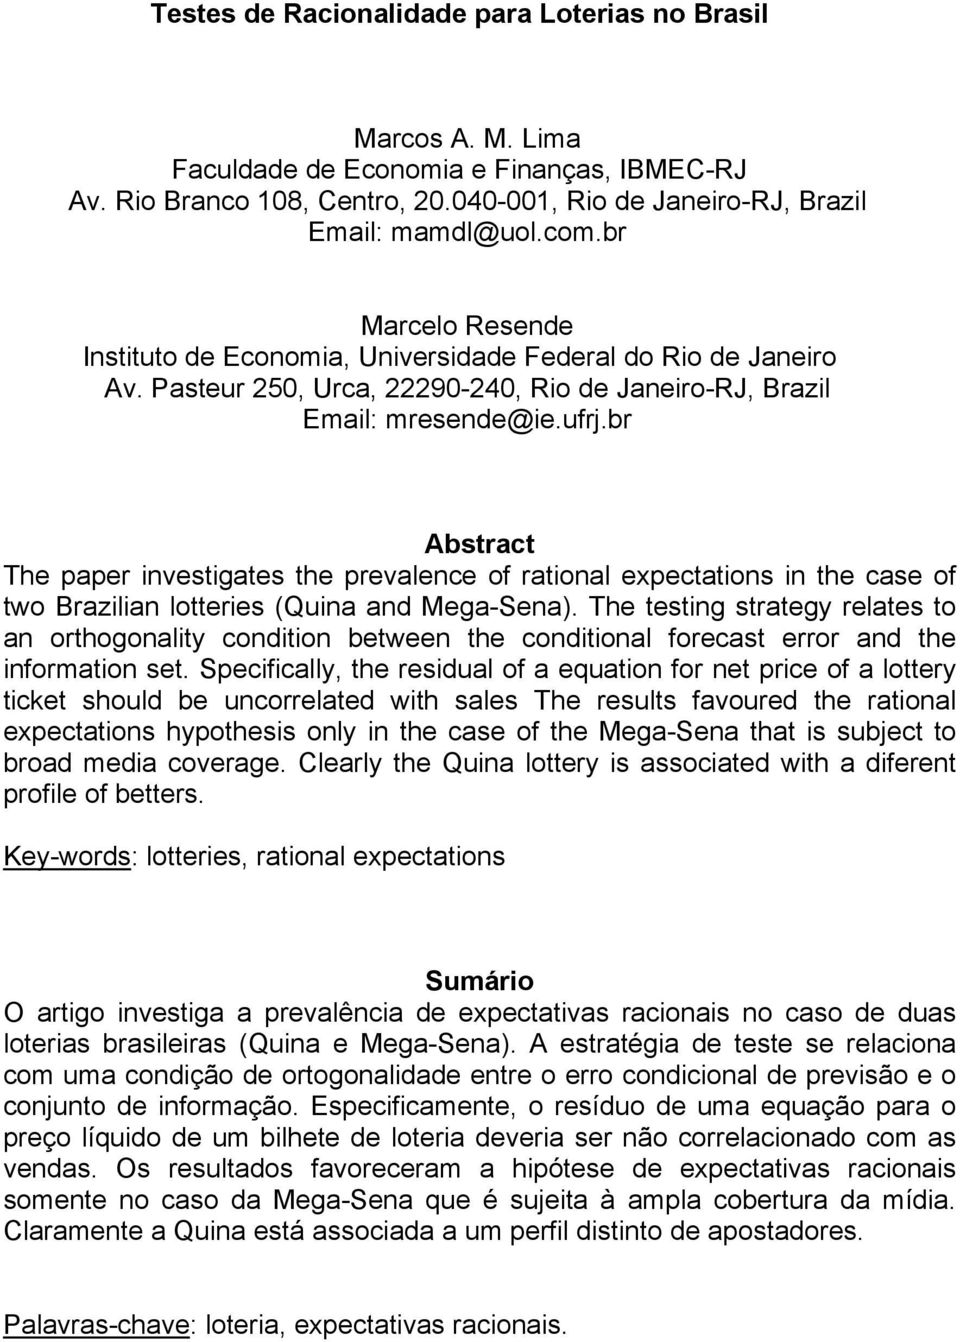 br Absrac The paper invesigaes he prevalence of raional expecaions in he case of wo Brazilian loeries (Quina and Mega-Sena).